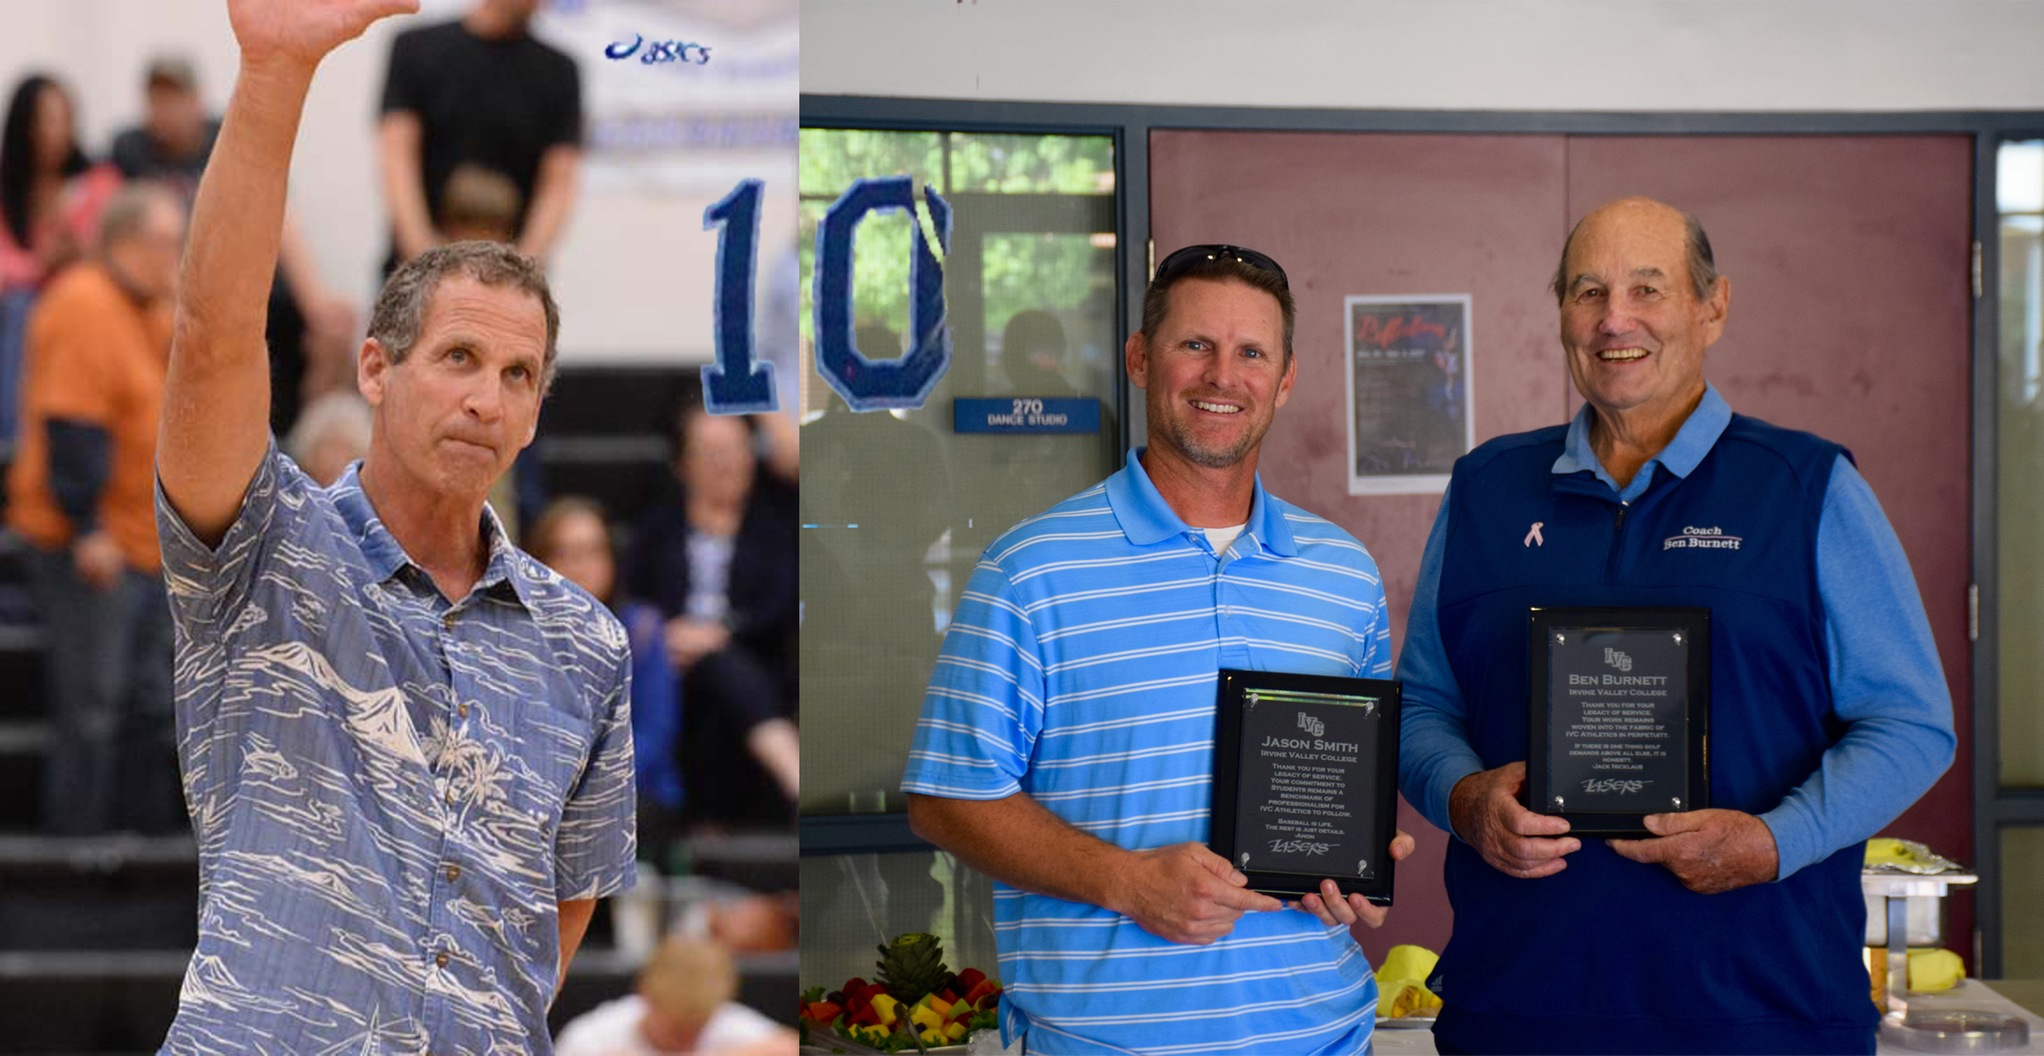 No. 10 Story of the Year - Irvine Valley storied coaches move on